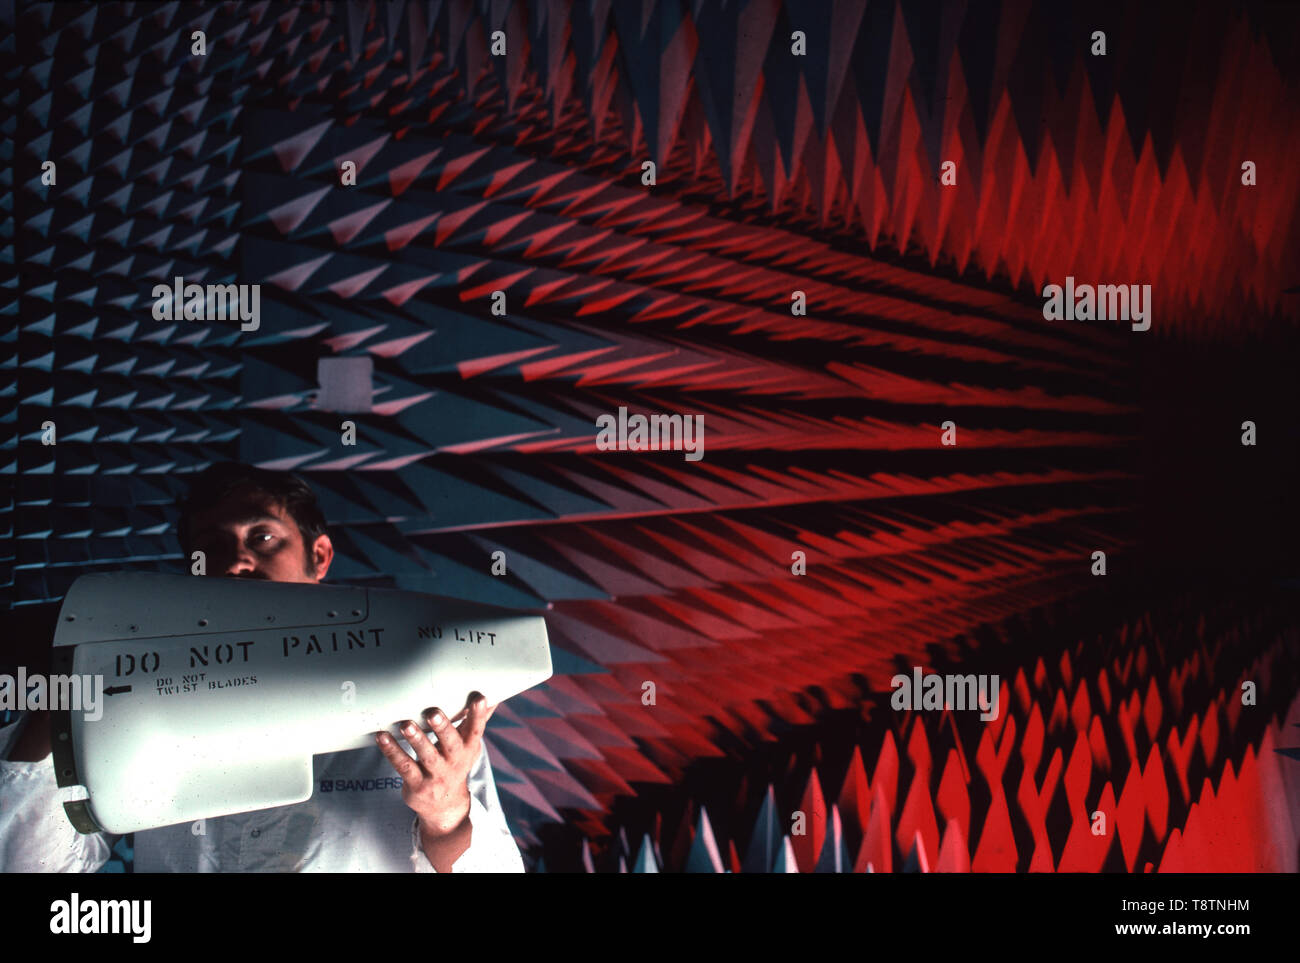 Sound Test Stock Photos & Sound Test Stock Images - Alamy